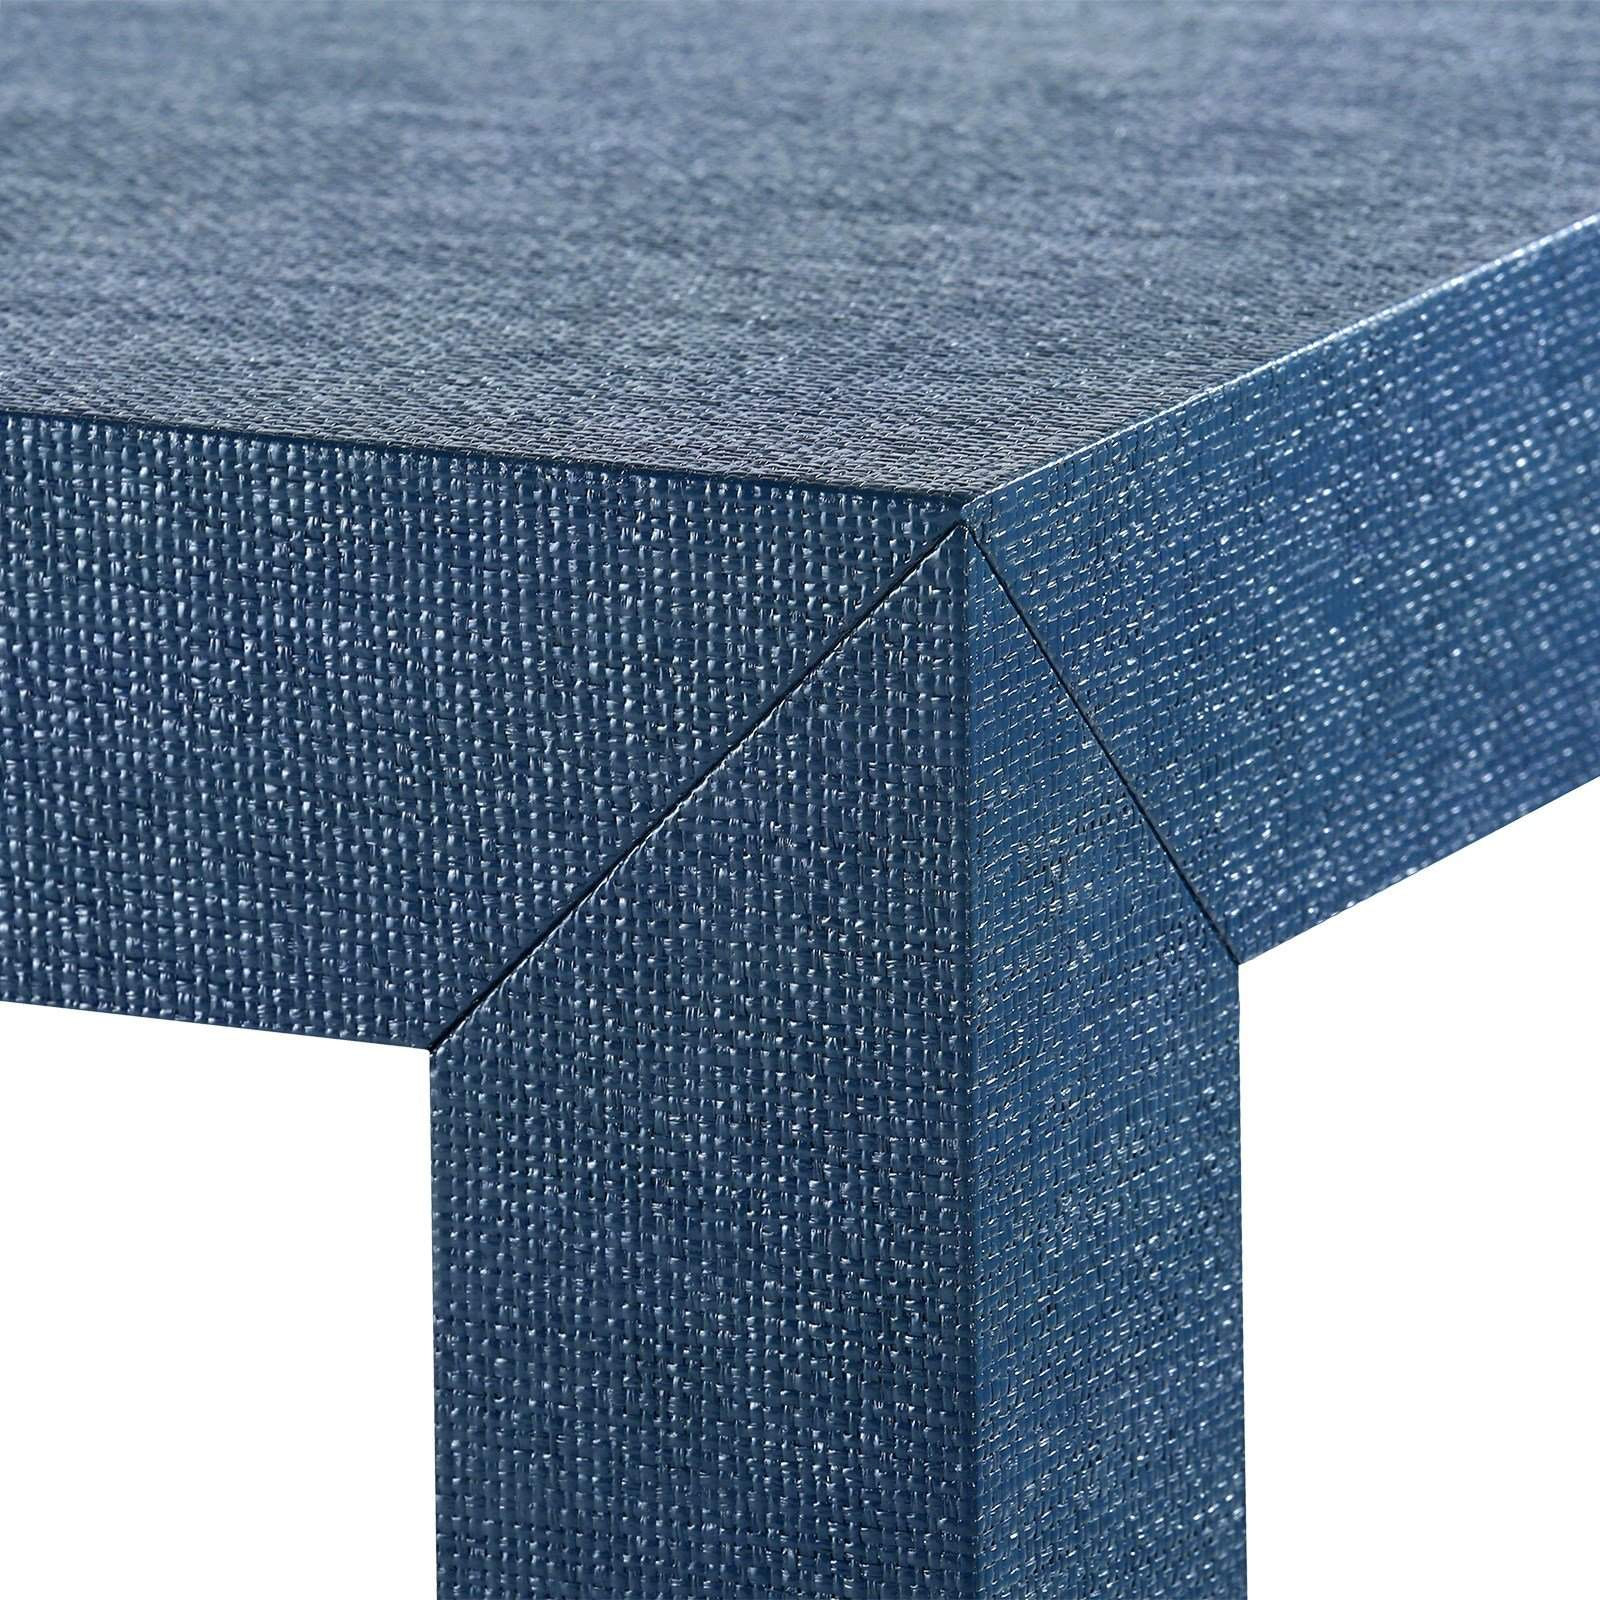 Bungalow 5 PARSONS COFFEE TABLE in NAVY BLUE